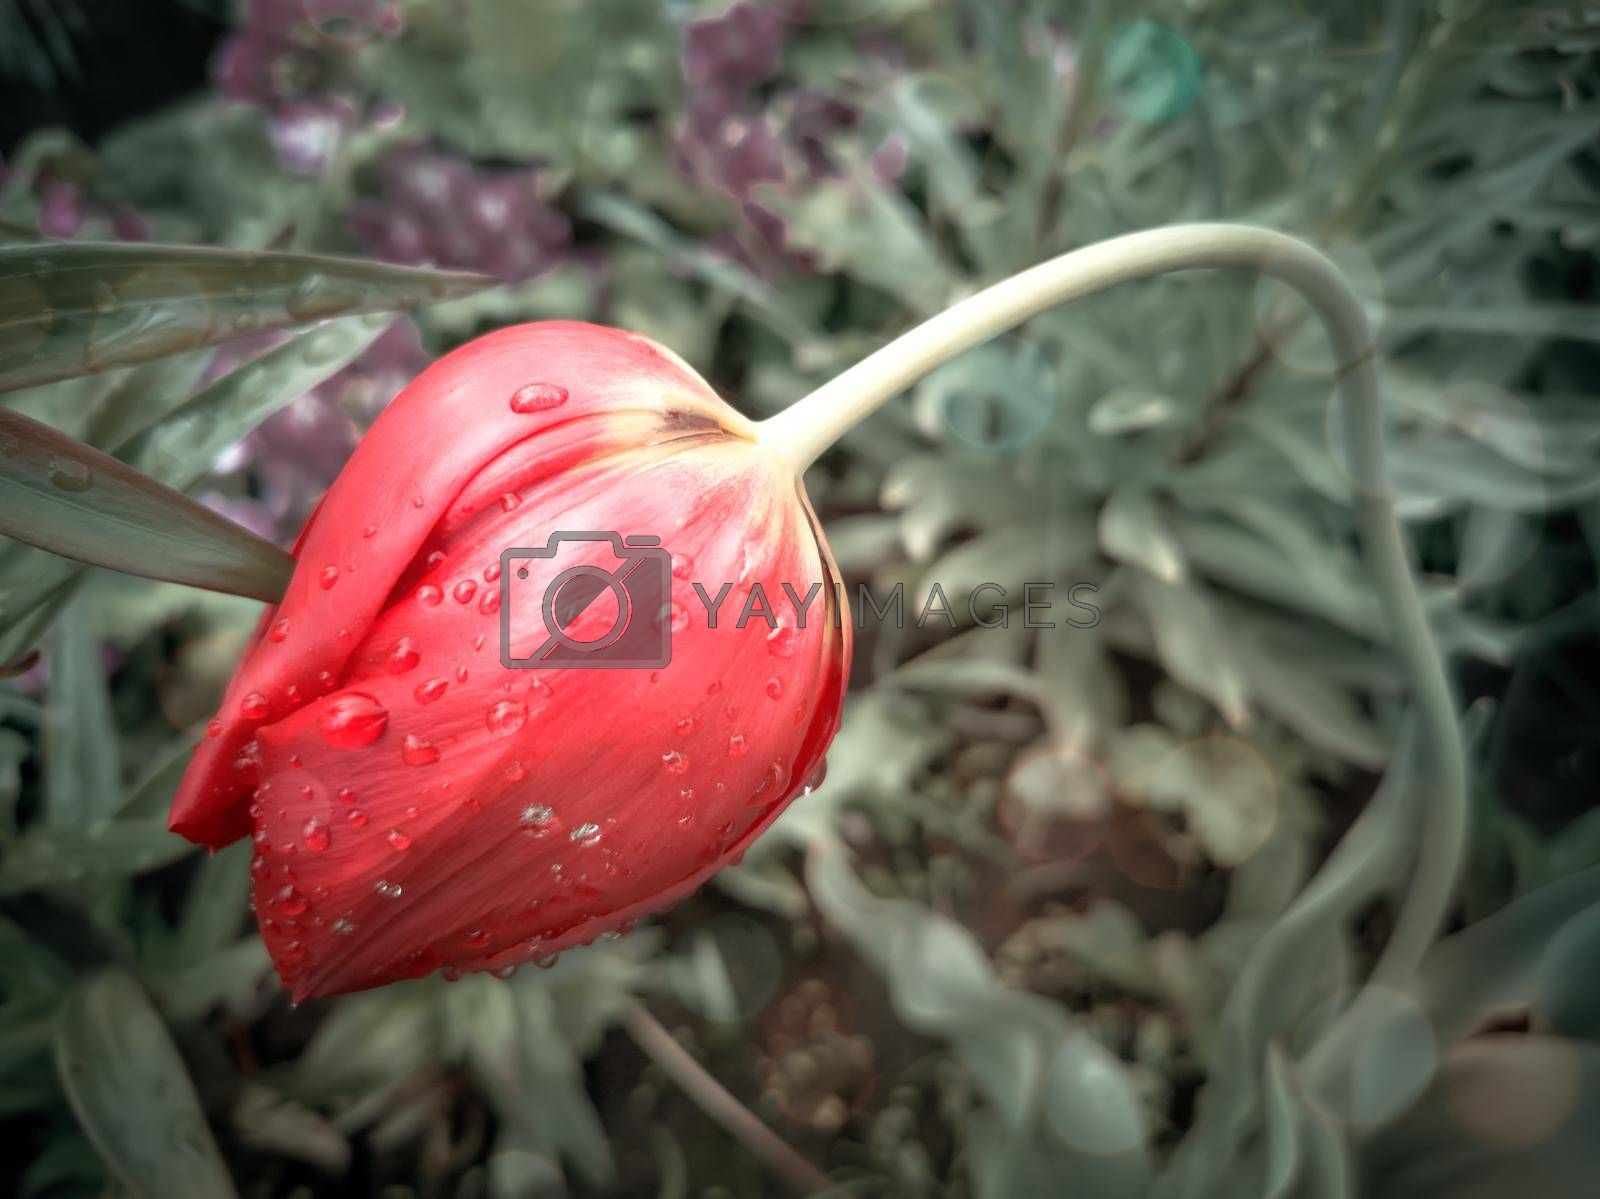 Beautiful red Tulip among green leaves in a flower bed in the garden. Presented in close-up.